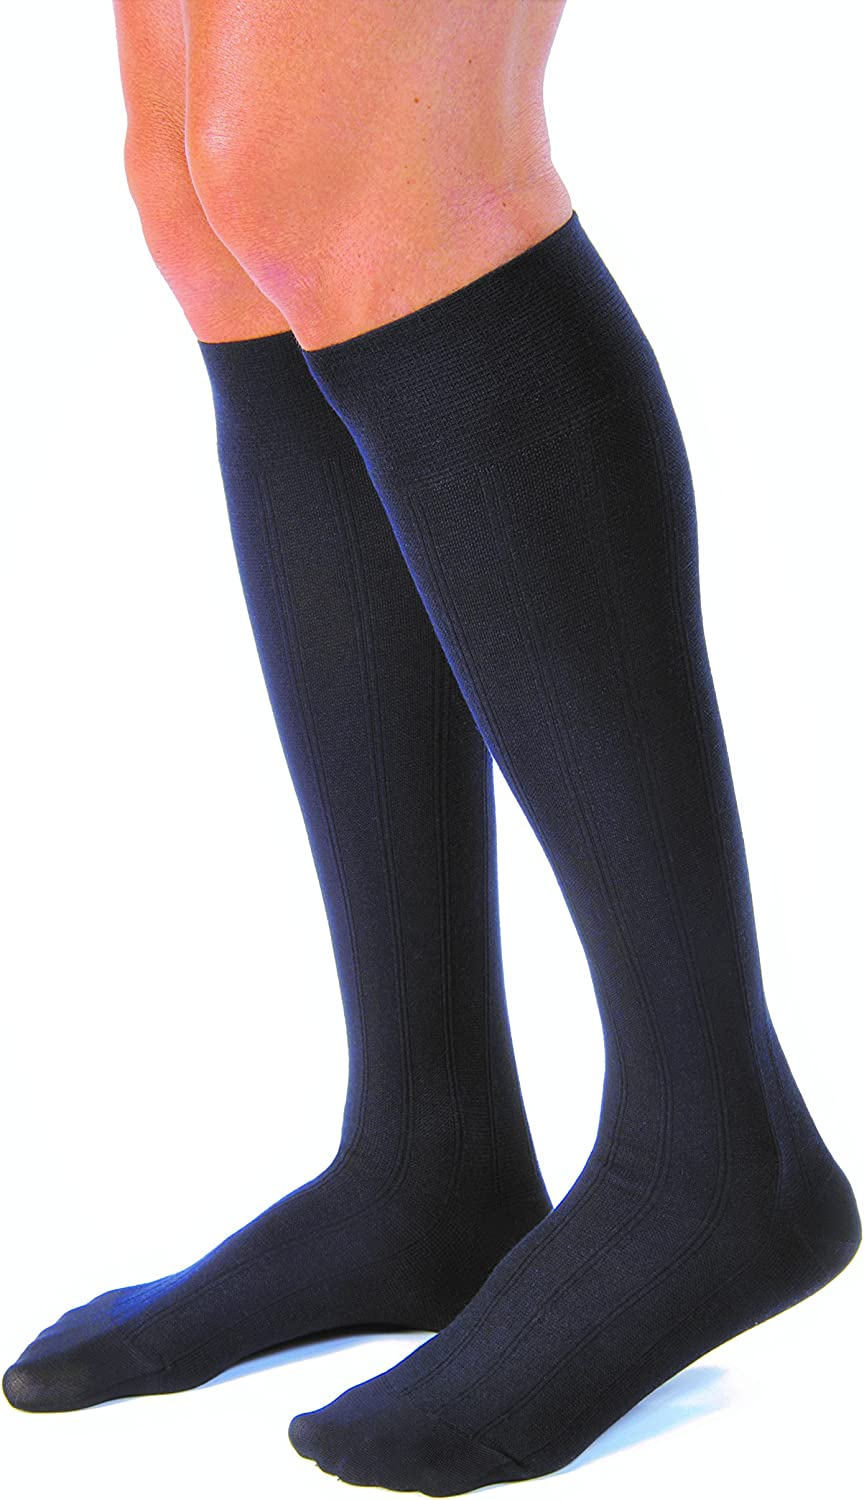 BSN 2021 autumn and winter new Medical 113150 Nippon regular agency JOBST Sock with High Closed Large Knee Toe